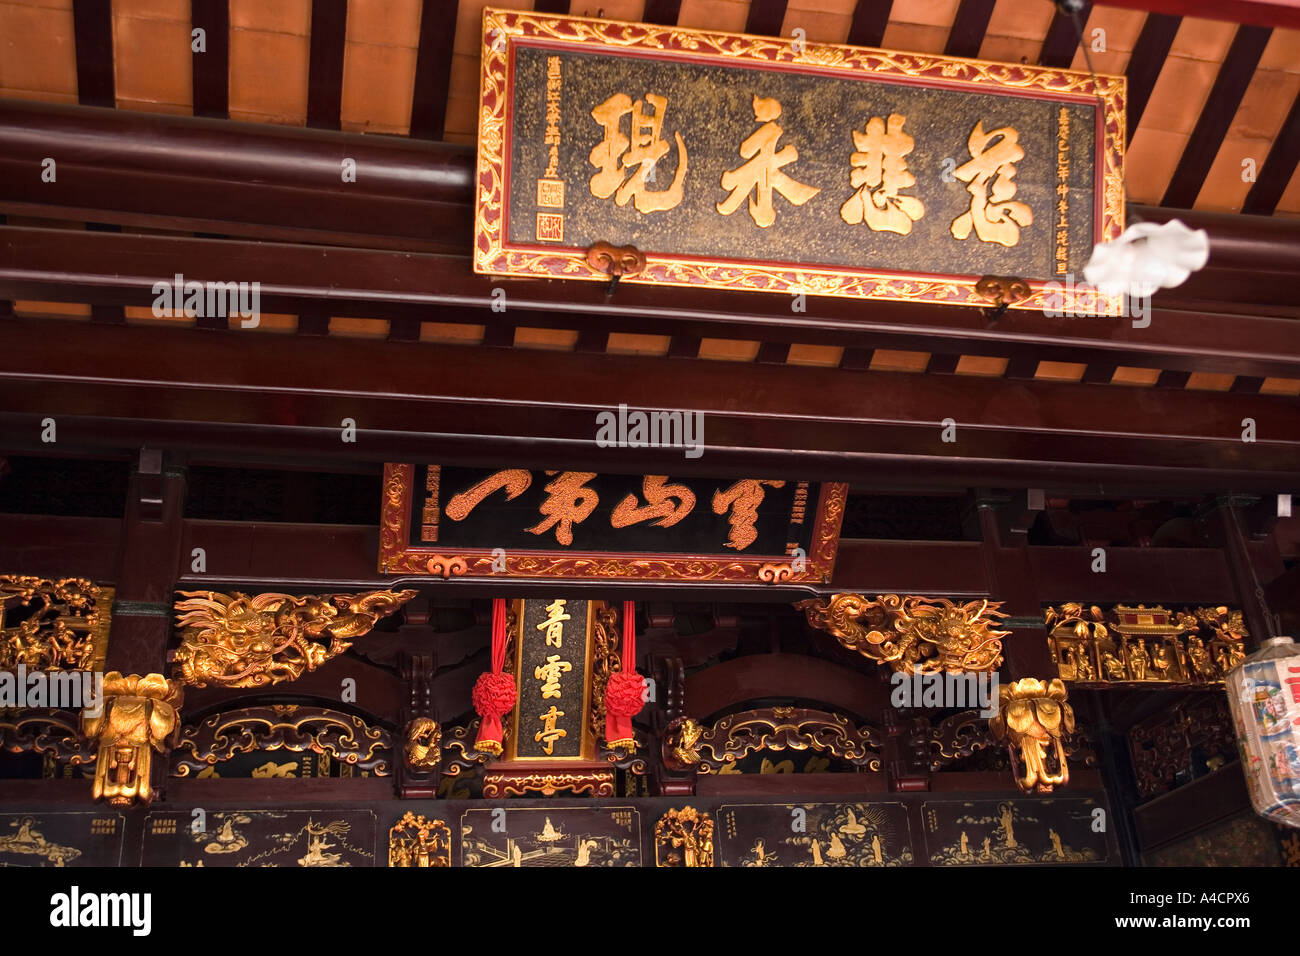 Malaysia Melaka Cheng Hoon Teng Temple carved gilded signboards - Stock Image